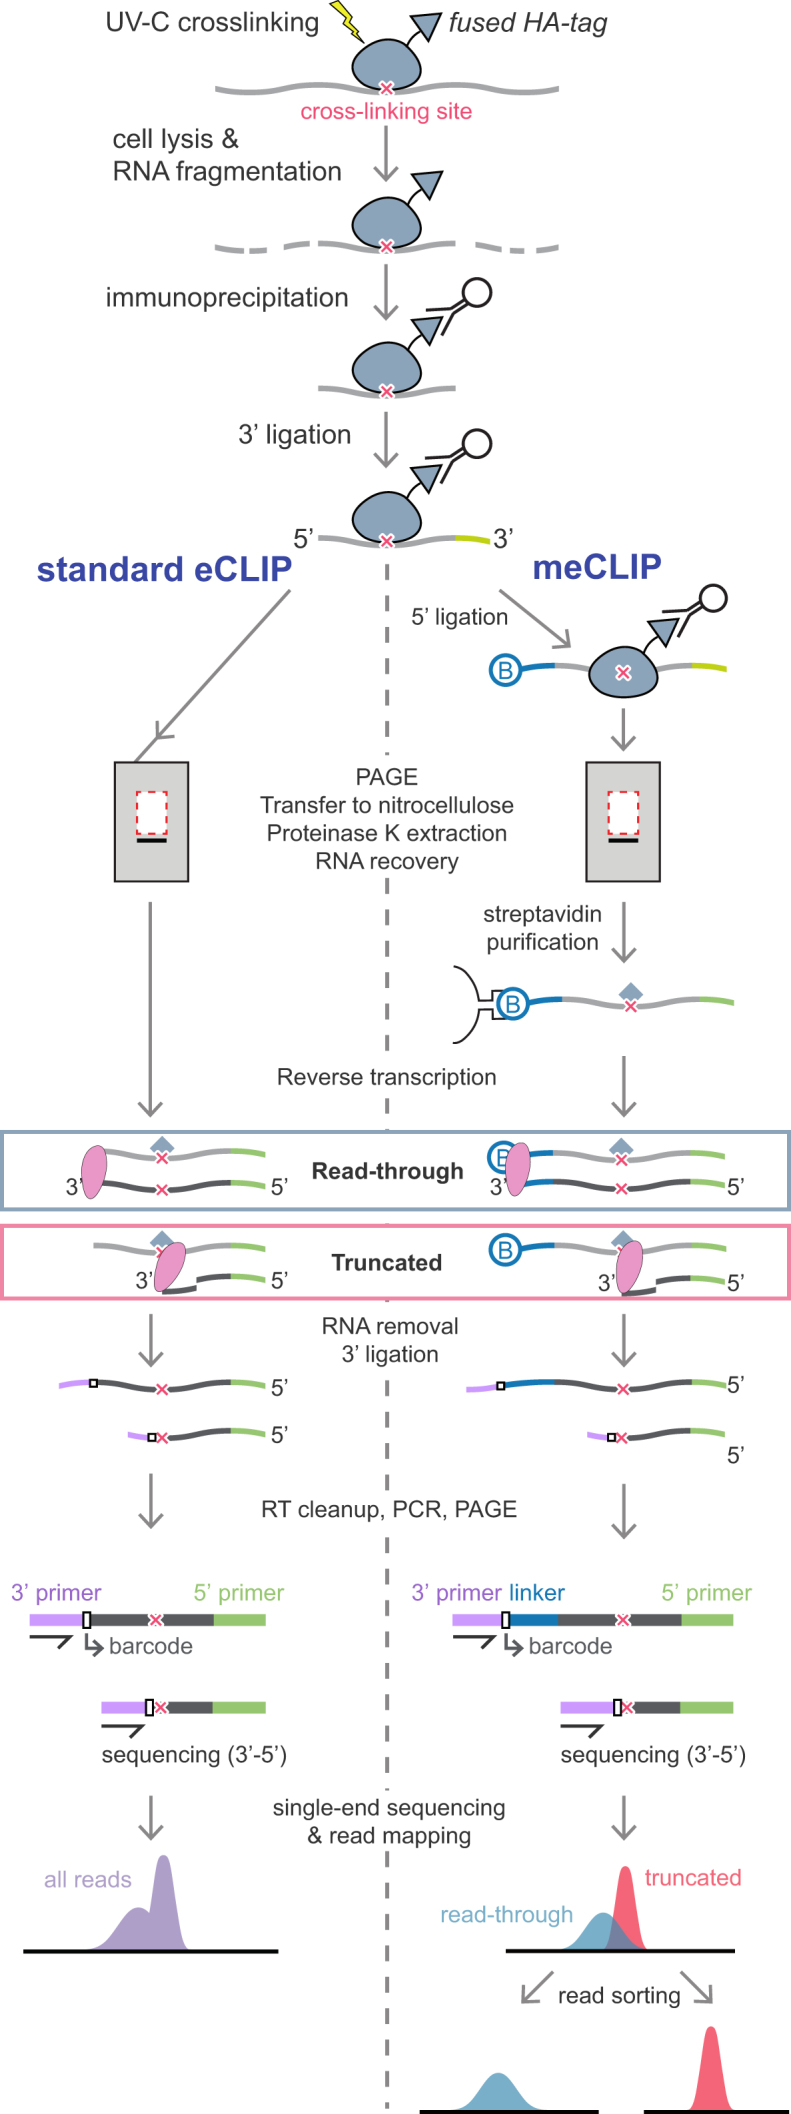 Detailed comparison of the eCLIP and meCLIP protocols. Presentation of the different steps involved in eCLIP and meCLIP procedures. Following UV crosslinking, RNase treatment, and RBP purification, an RNA adaptor (green) is ligated at the 3′ end. For meCLIP, a biotinylated RNA linker (blue) is incorporated at the 5′ end. RNAs are fractionated by electrophoresis and eluted from gels. For meCLIP, biotinylated RNAs are purified on Streptavidin beads using stringent conditions. Reverse transcription (RT) is then performed, which leads to two distinct cDNA populations. One of them bears the 5′ linker if the reverse transcriptase reads through the crosslinked peptide (read-through cDNAs). The other one lacks the 5′ linker due to a stop of RT at the crosslinked peptide. A second adaptor (purple) is ligated at the <t>3′</t> end of the cDNAs which are next amplified by PCR and submitted to high-throughput sequencing. For meCLIP, two populations of reads are easily sorted out based on the presence or absence of the biotinylated linker sequence.